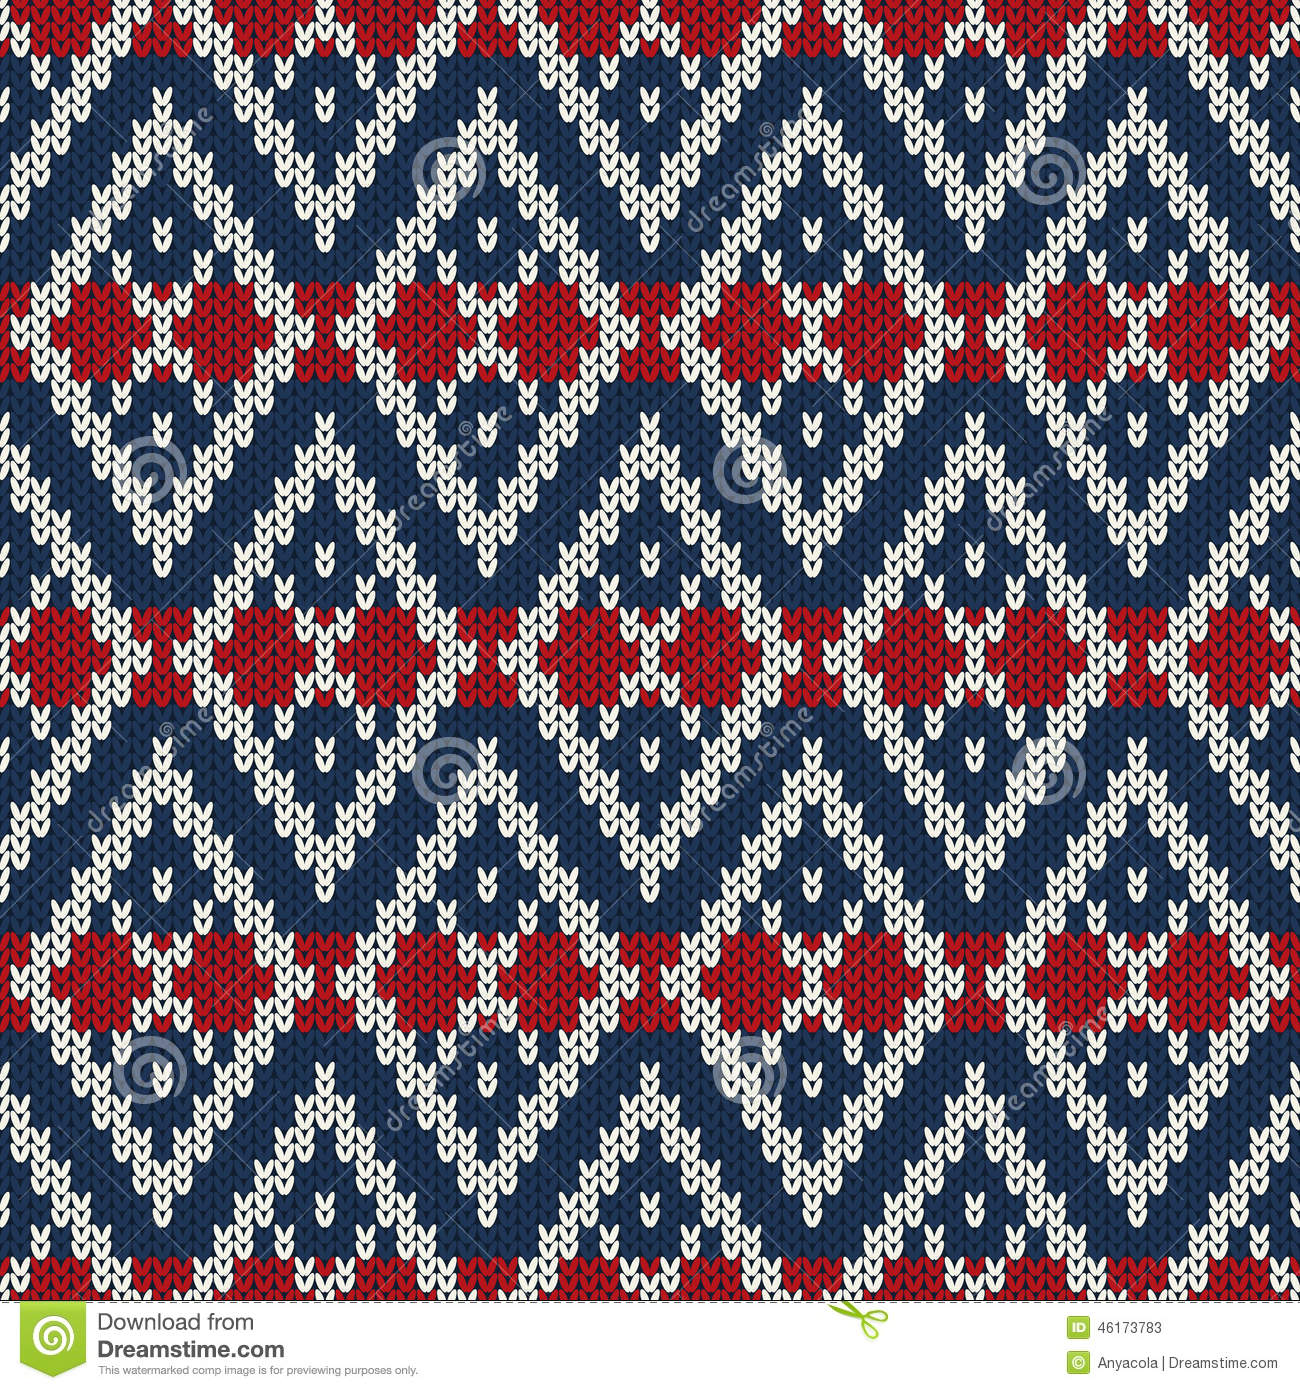 Knitting Patterns For Winter Sweaters : Winter Holiday Sweater Design On The Wool Knitted Texture ...